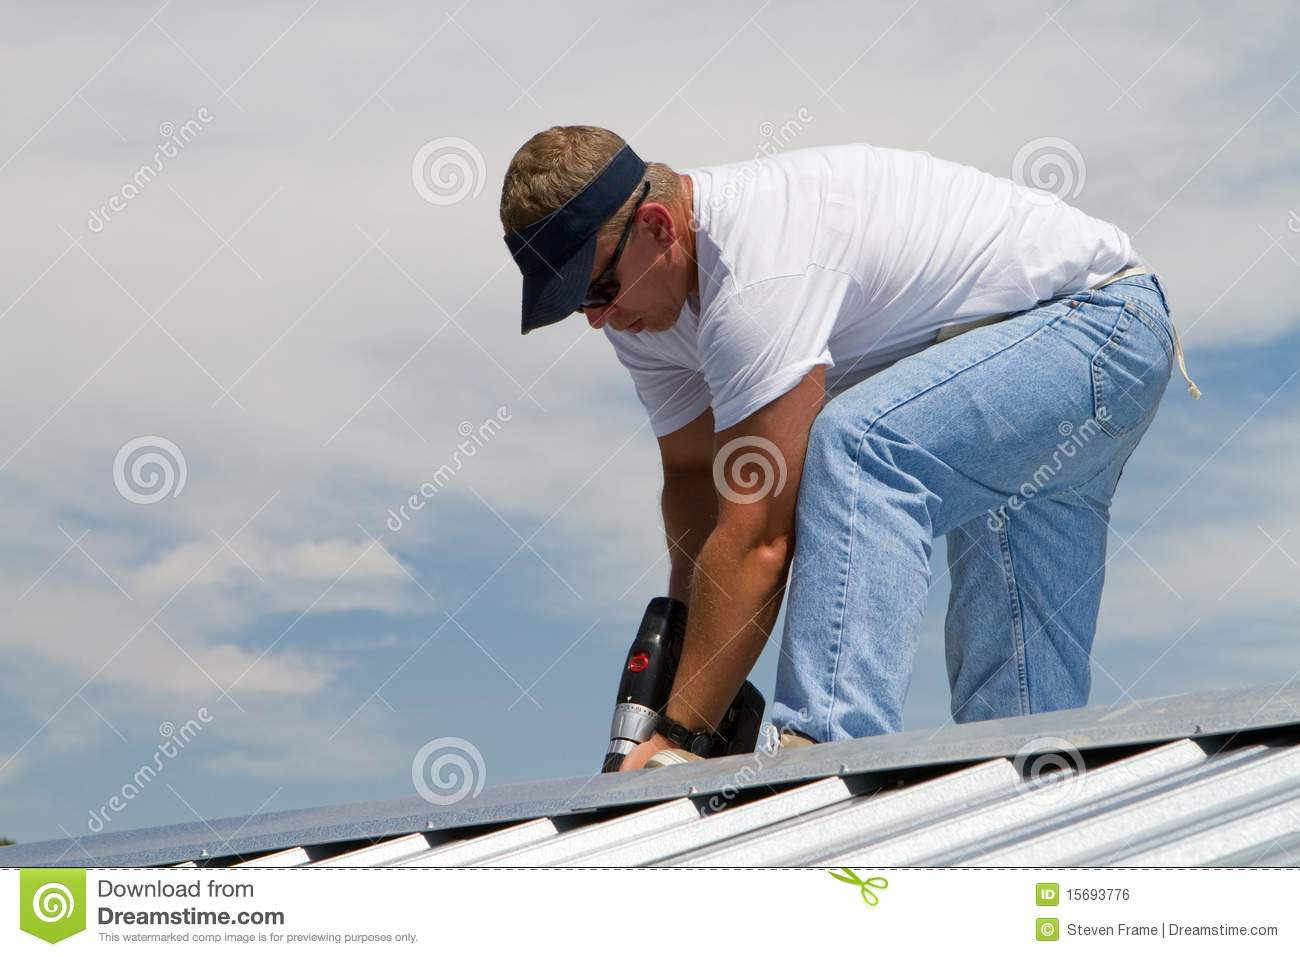 Roof Construction Worker